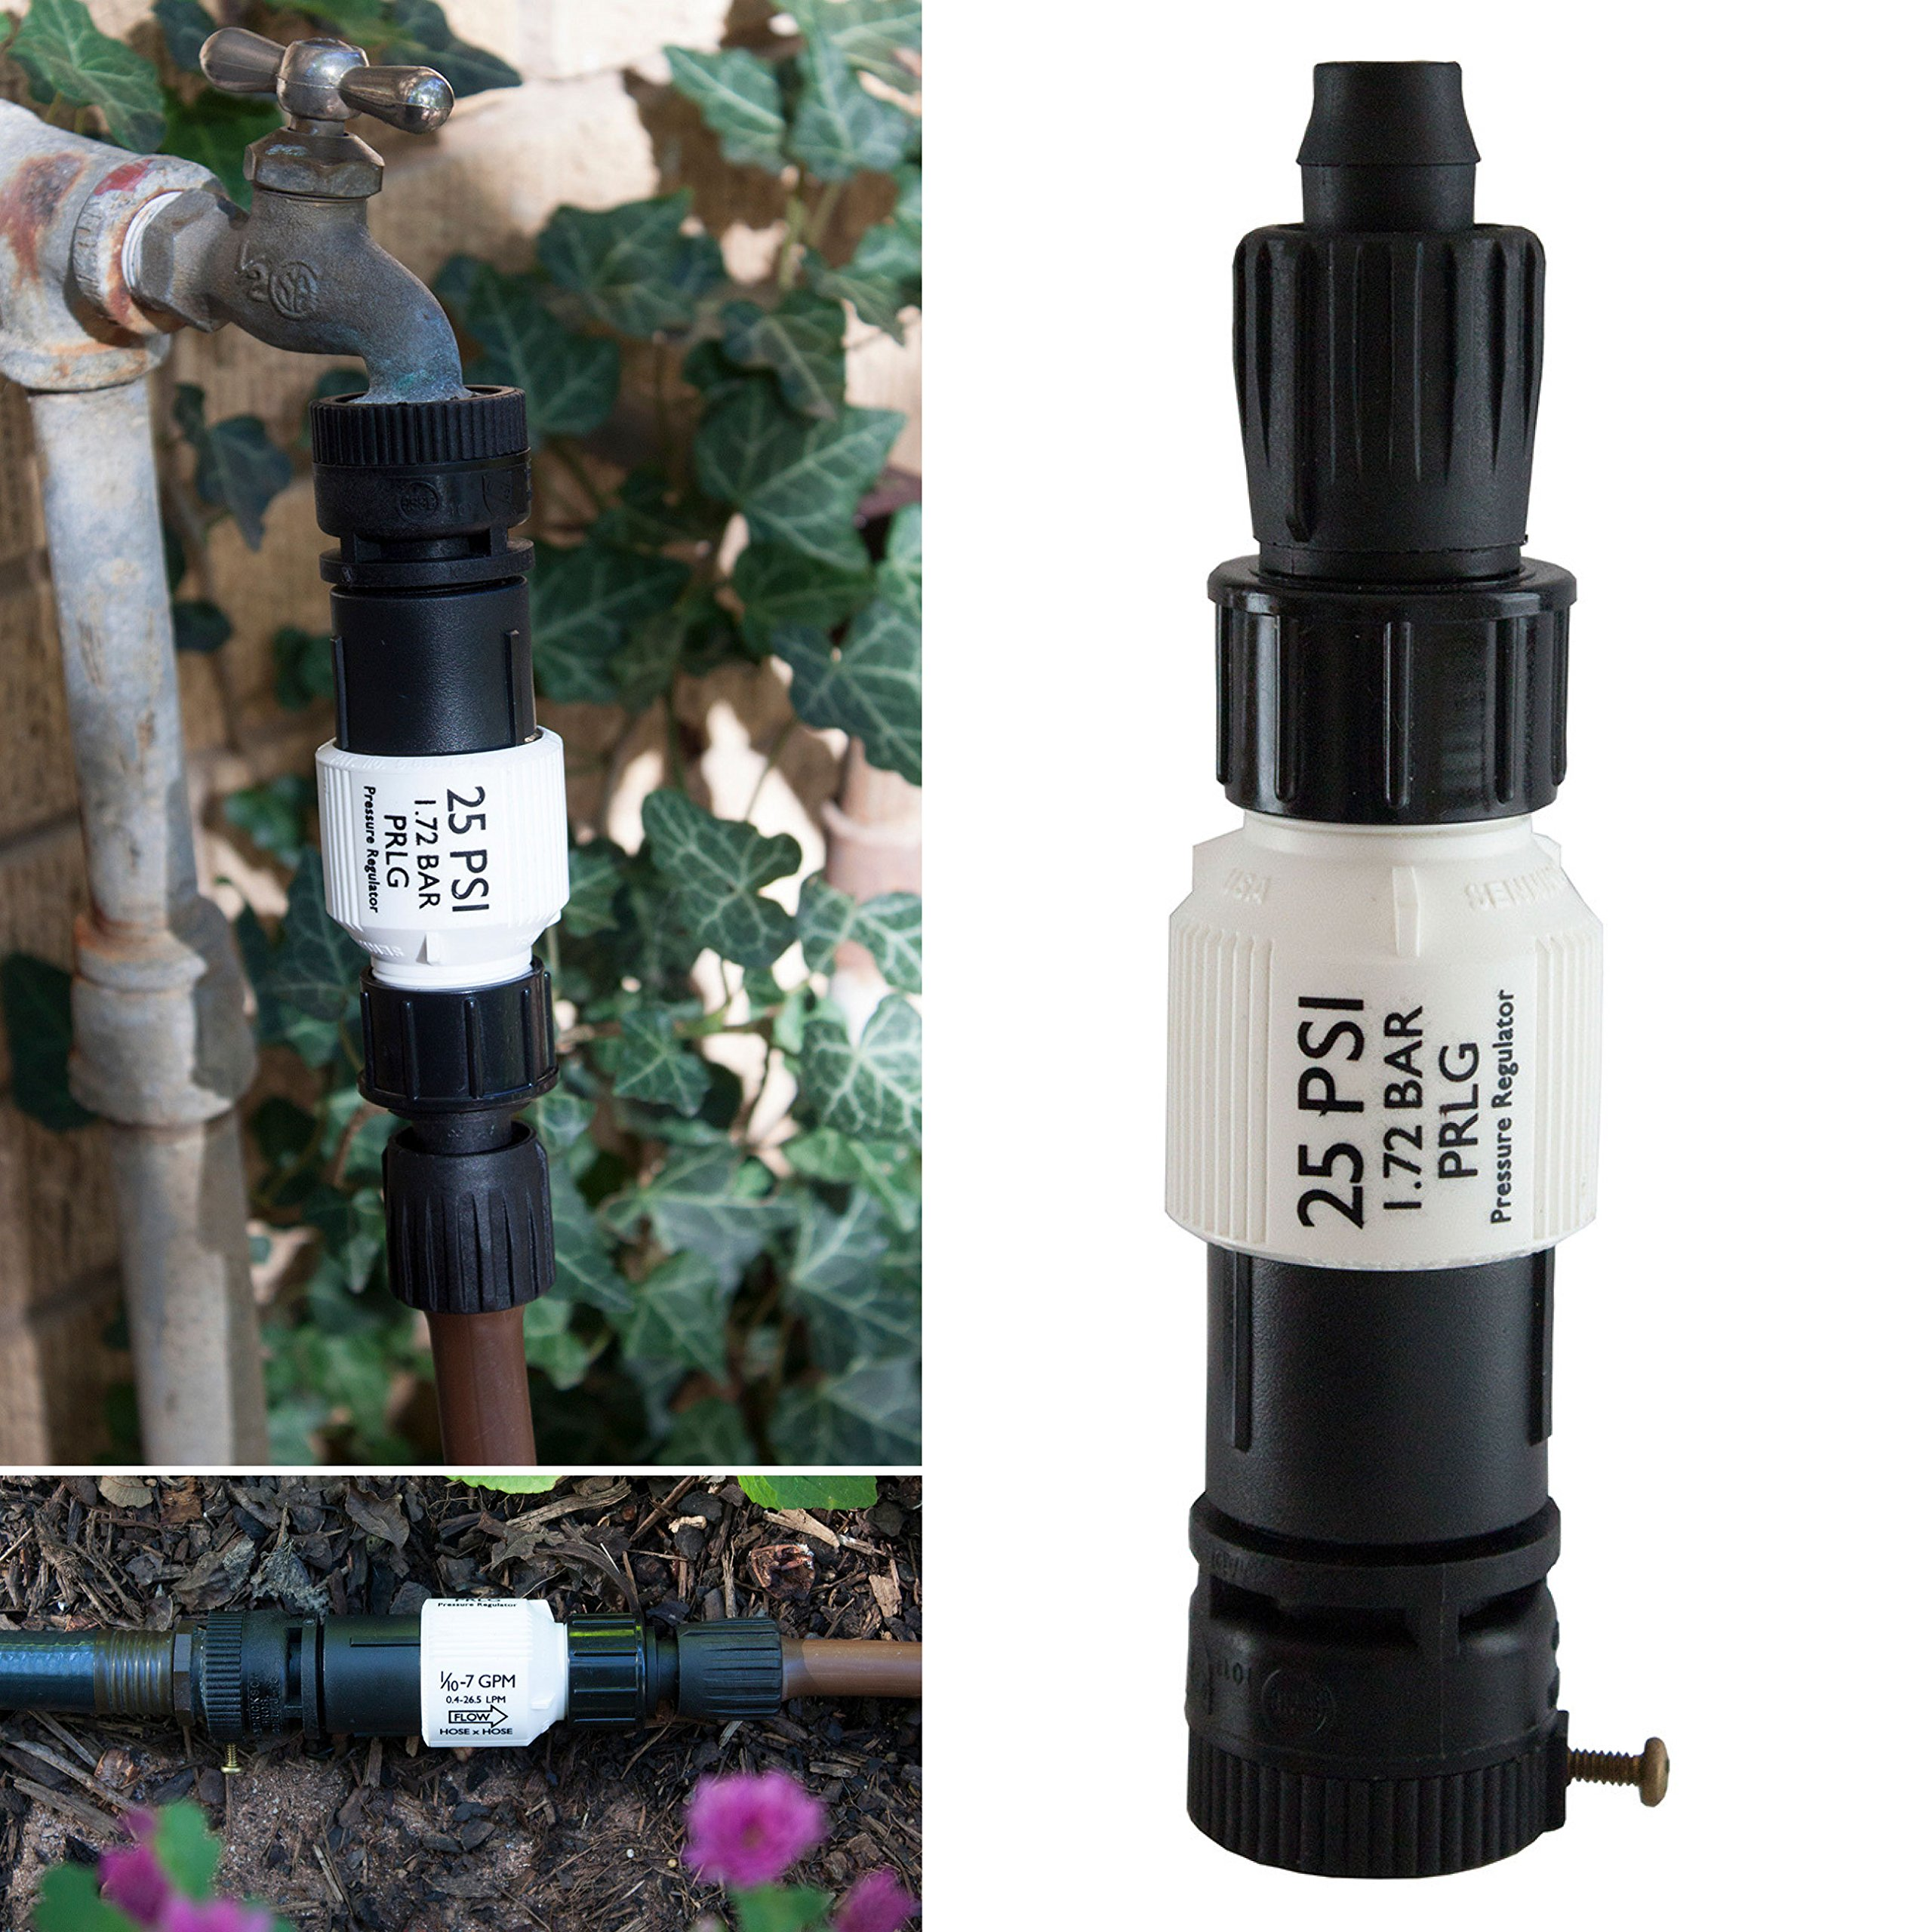 Habitech Drip Irrigation Faucet Adapter Kit: Connect 1/2\